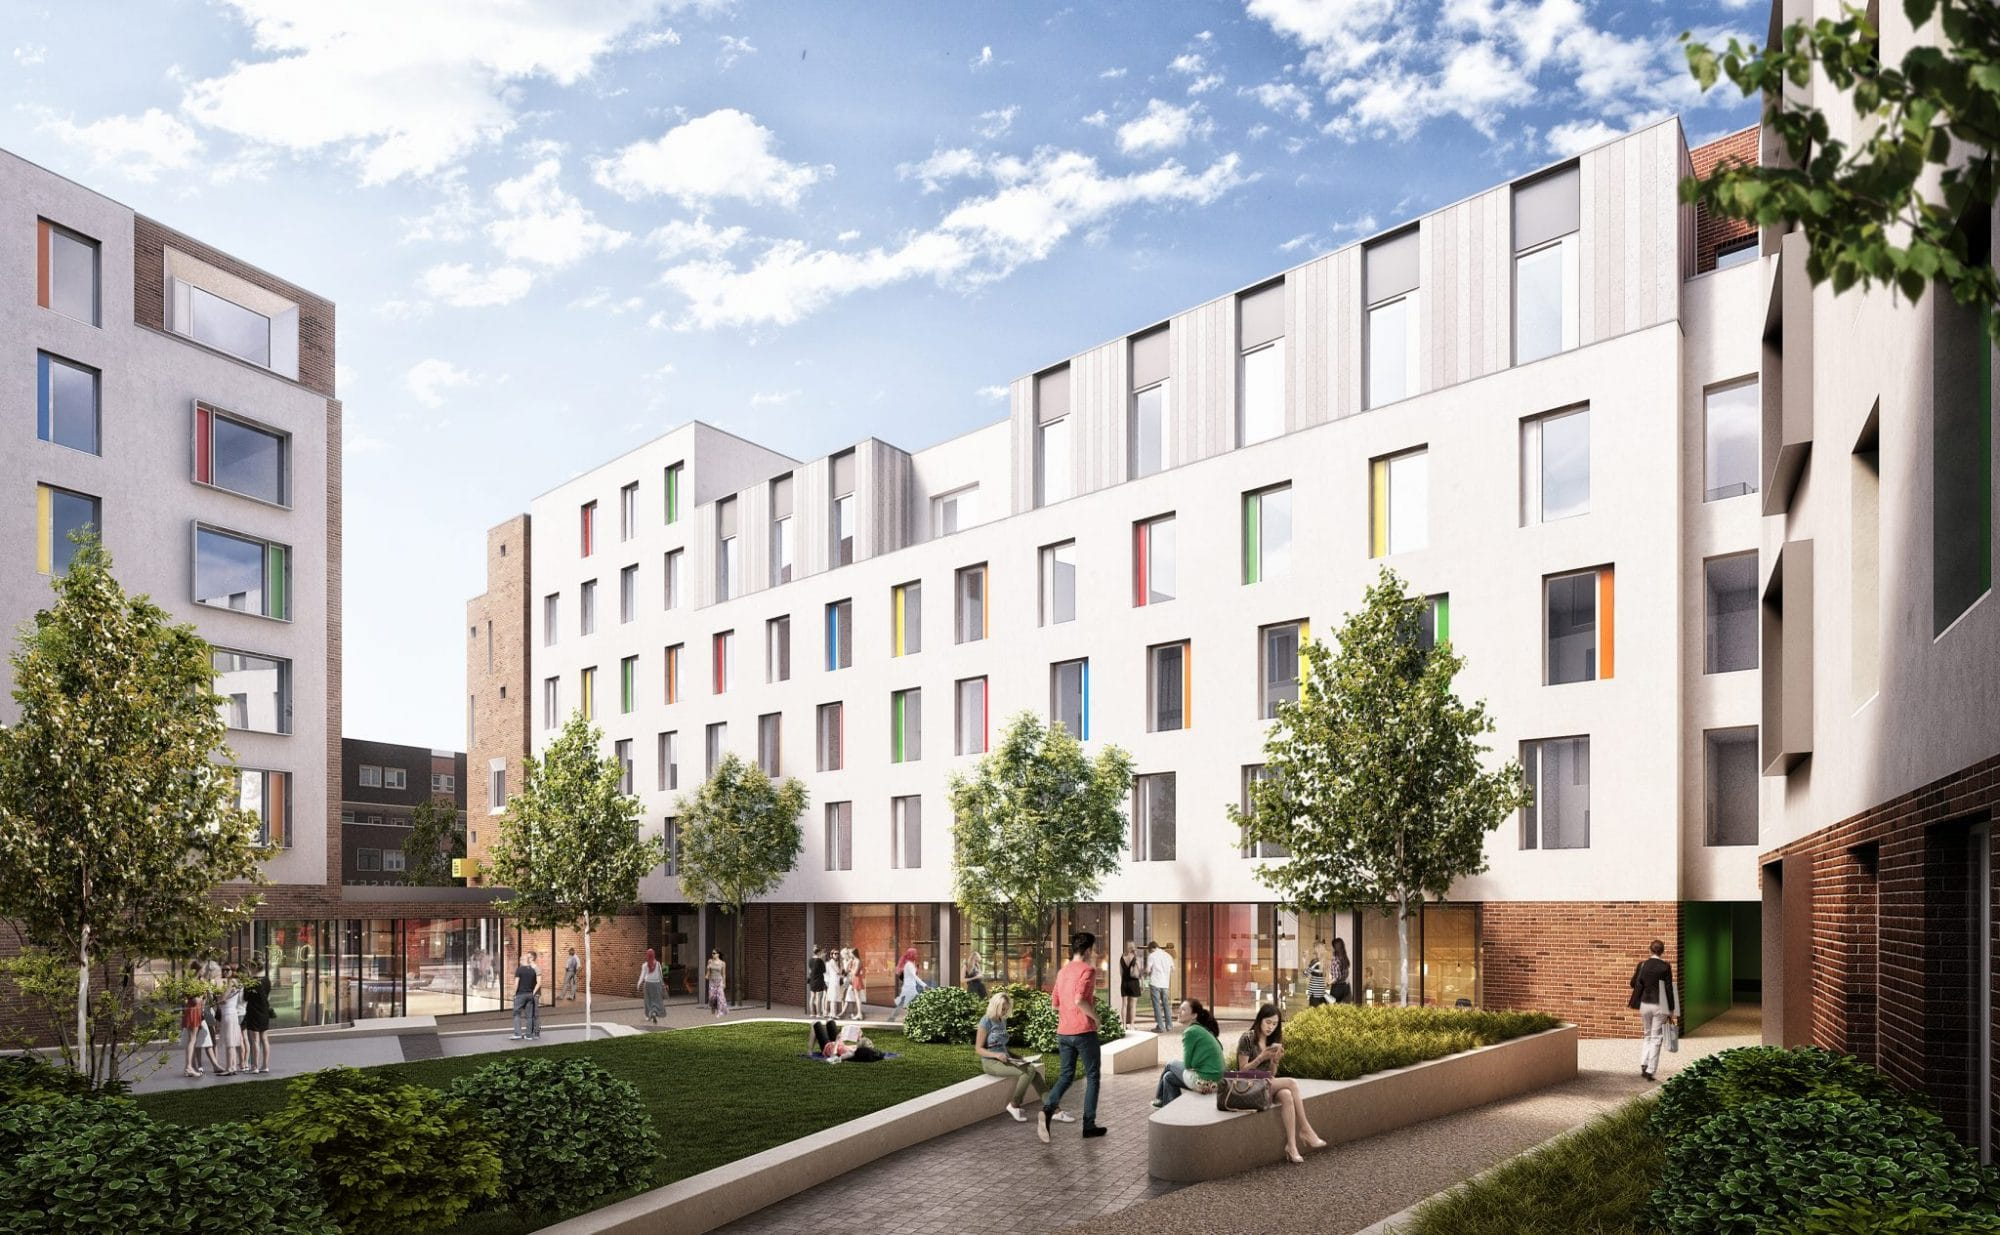 'Dorset Point' Purpose Built Student Accommodation (PBSA) in Dublin 1